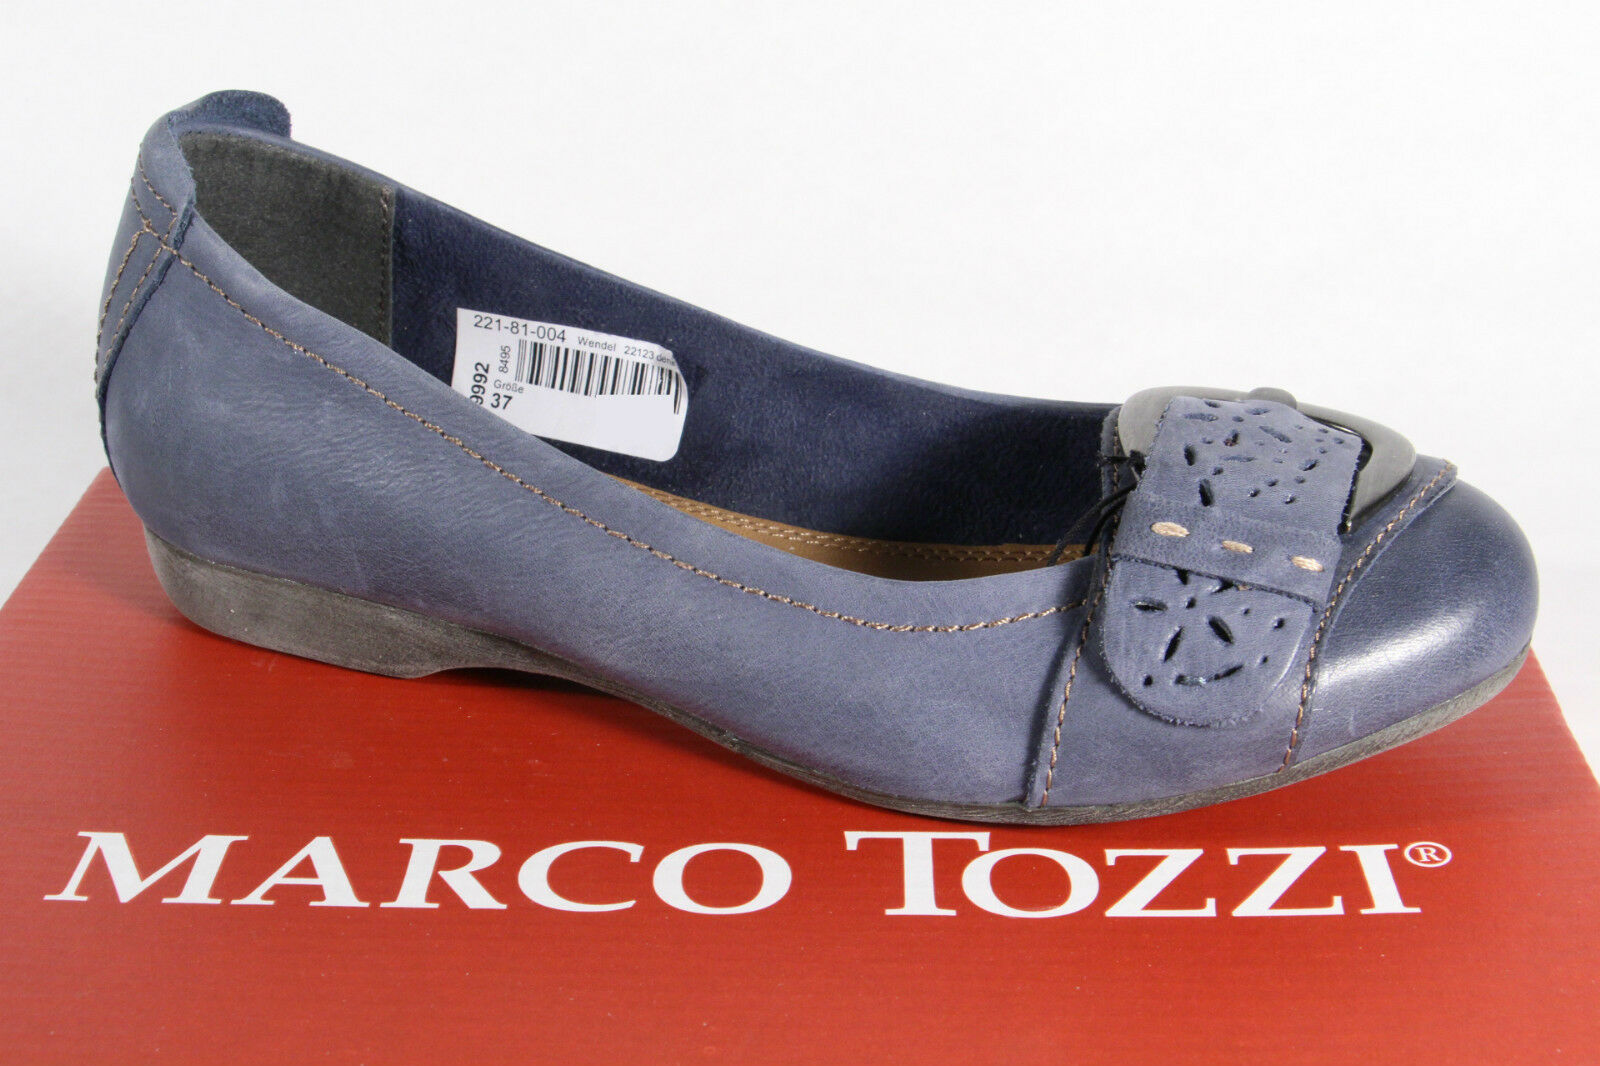 MARCO TOZZI Ballerina Slippers Blue Real Leather NEW